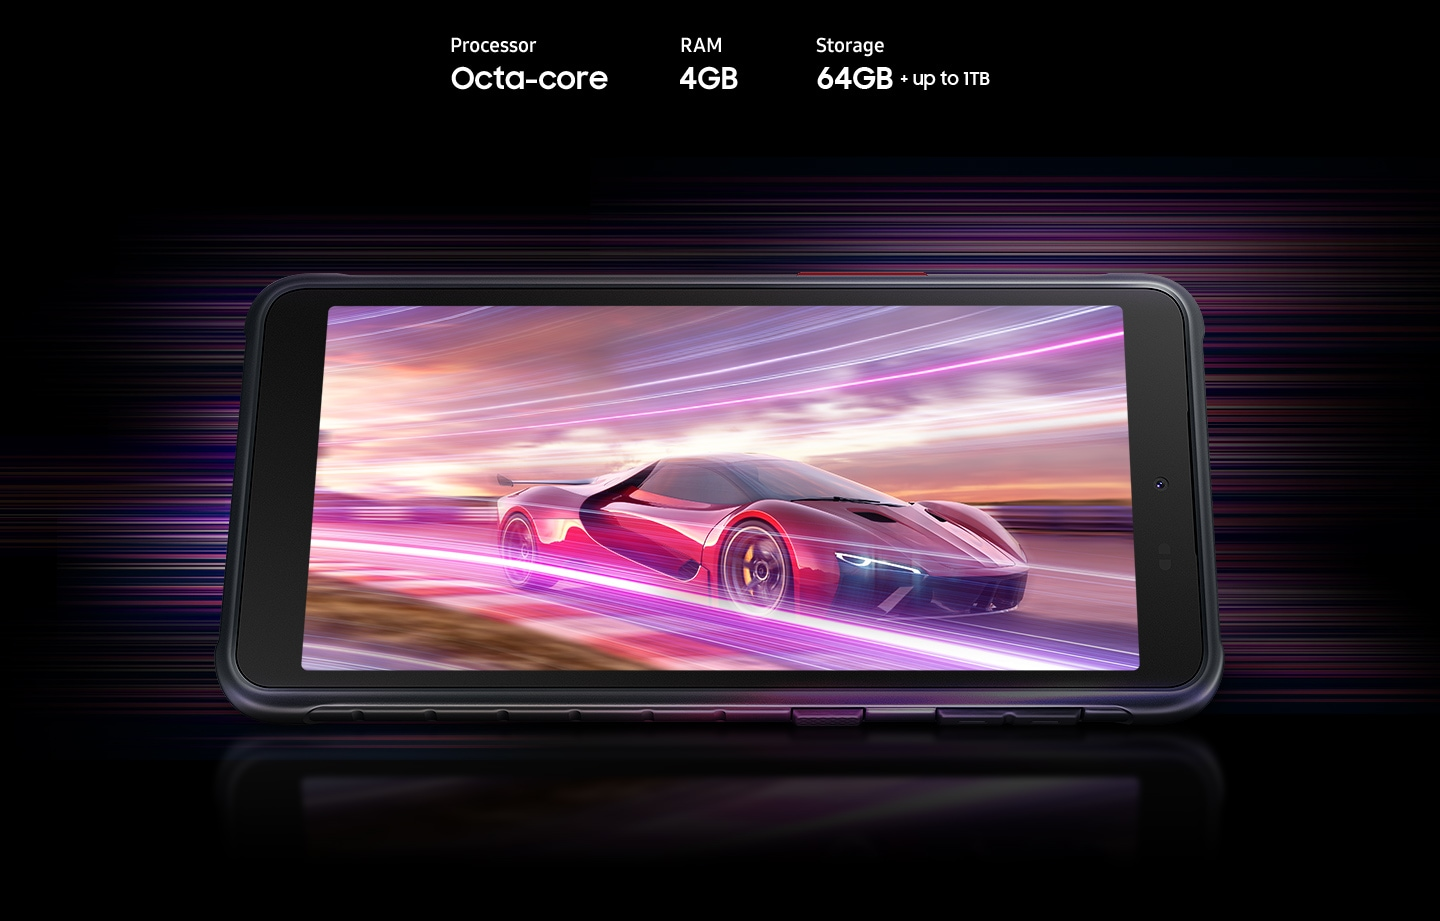 Galaxy XCover 5 shows a red racing car, indicating device offers Octa-core processor, 4GB RAM, 64GB with up to 1TB-storage.